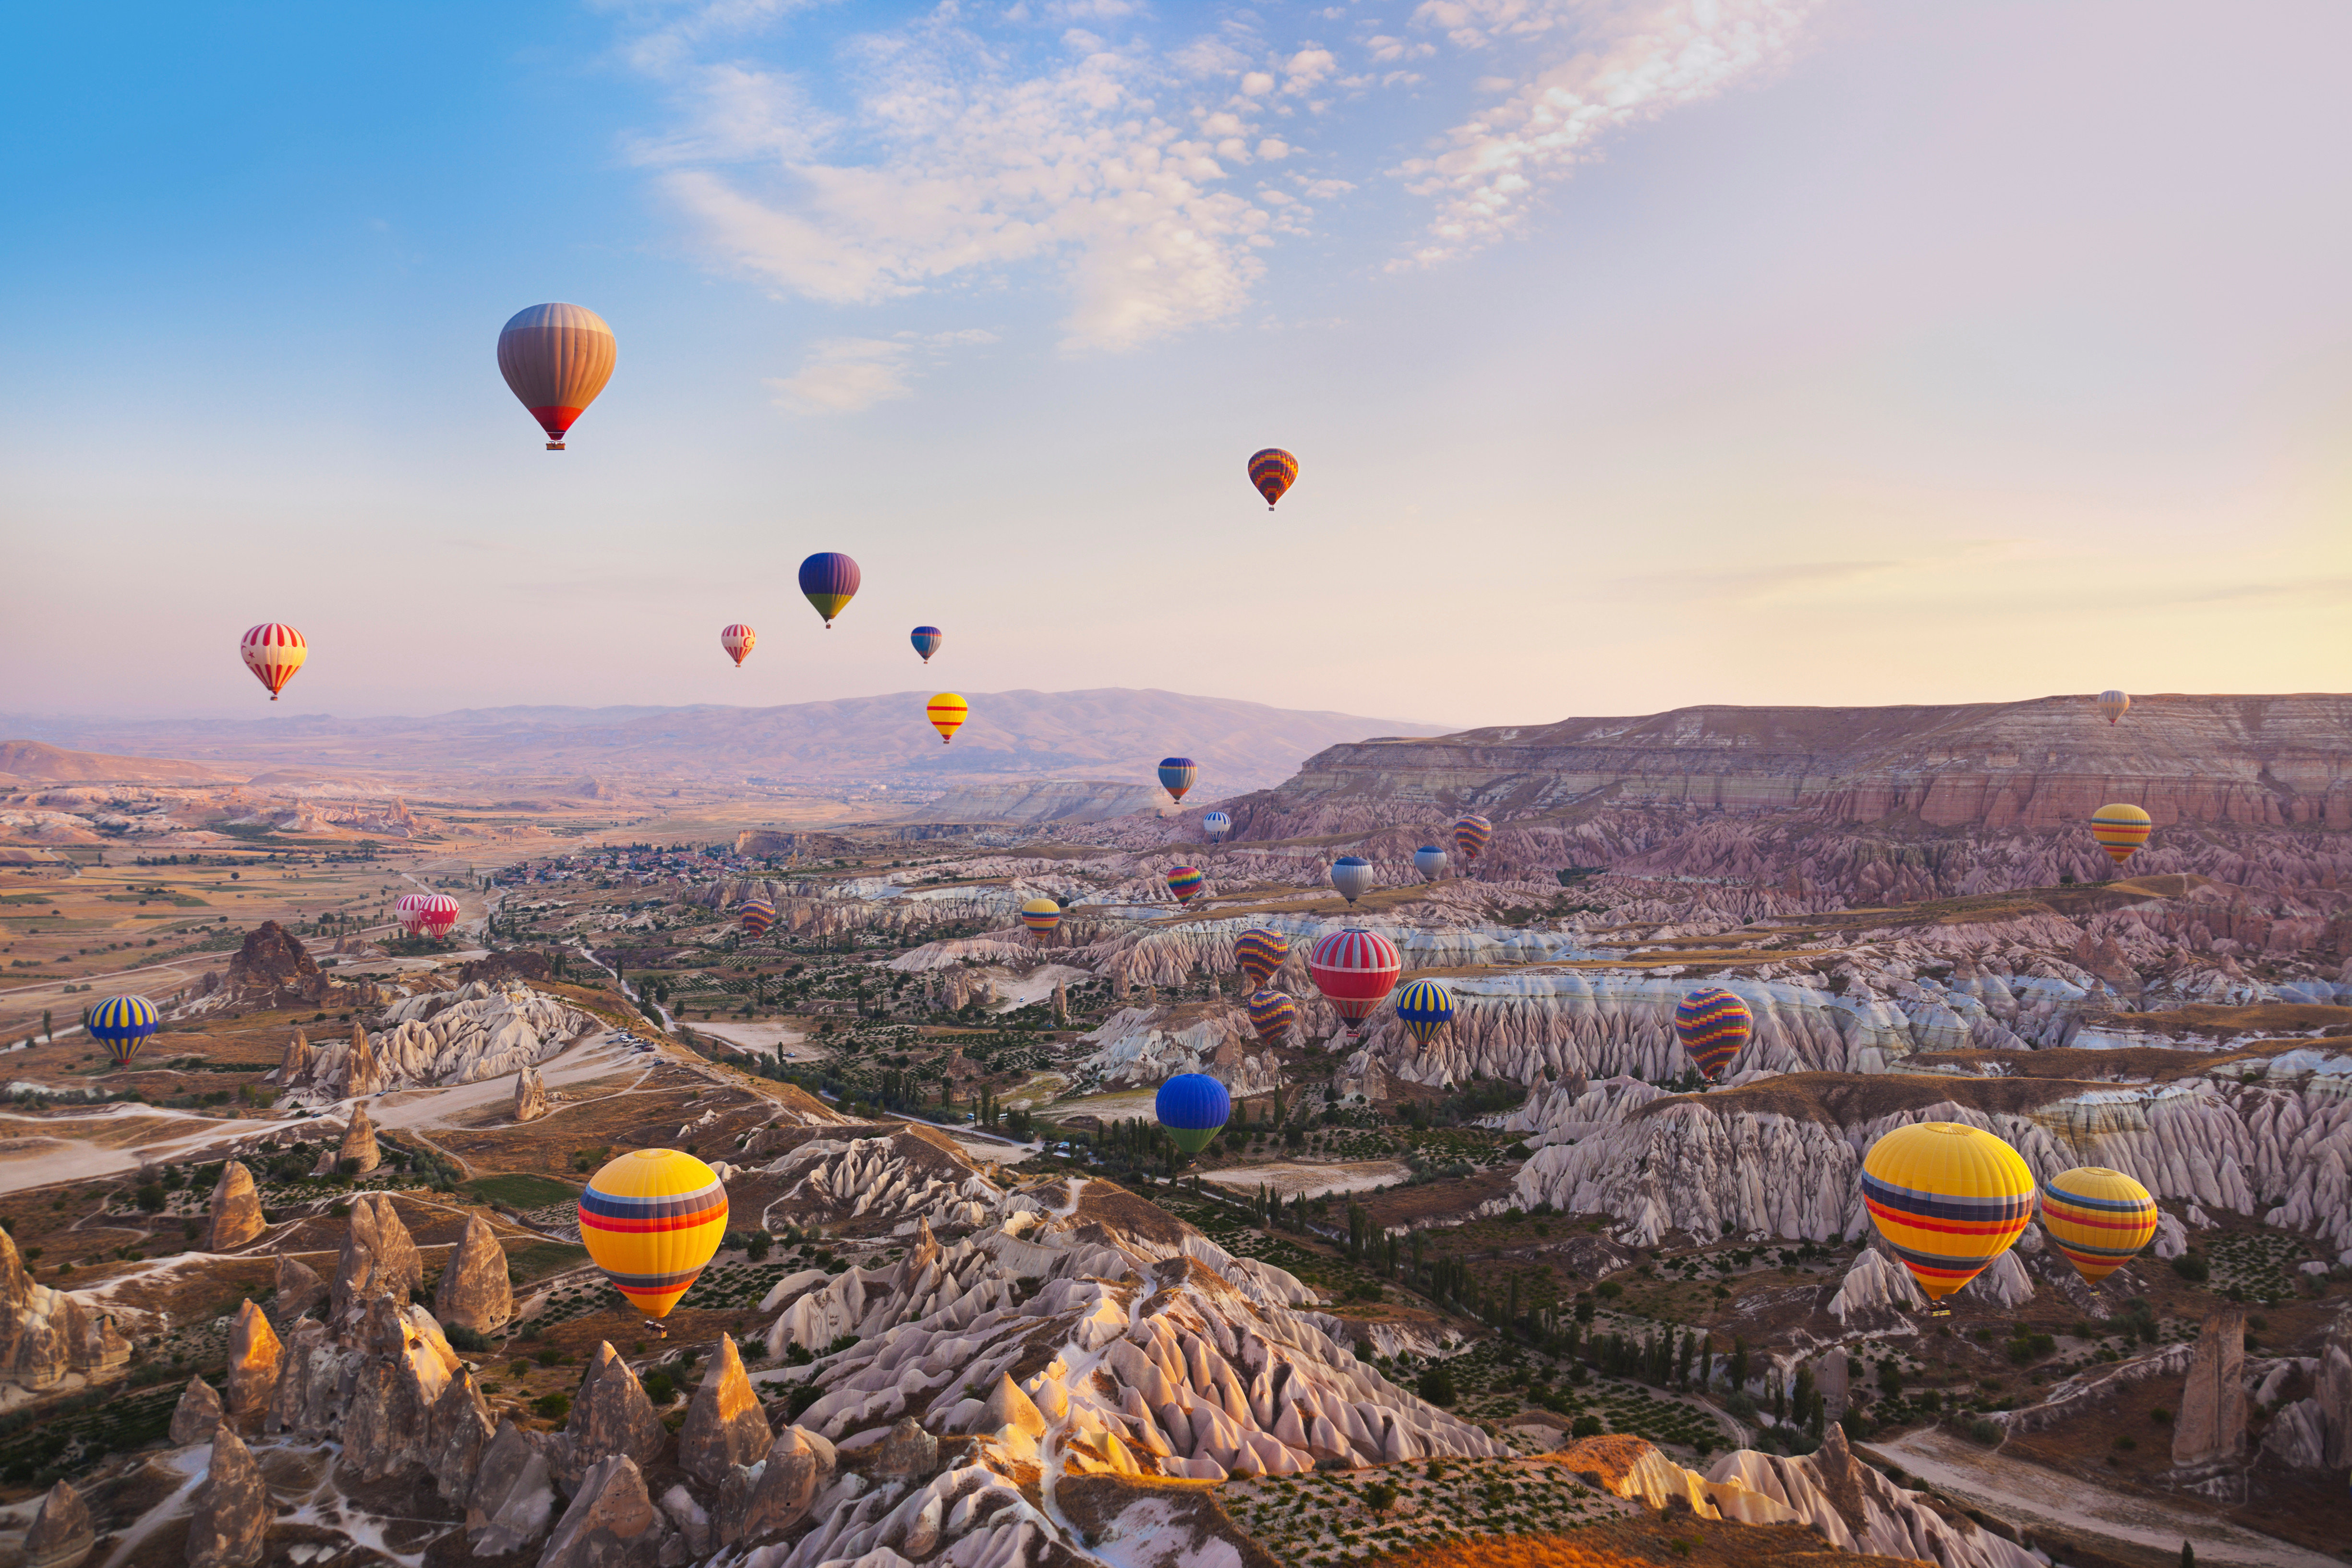 Luxury Outdoors Resort Scenic views Trip Ideas sky aircraft balloon transport hot air ballooning Hot Air Balloon vehicle atmosphere of earth toy extreme sport Raft